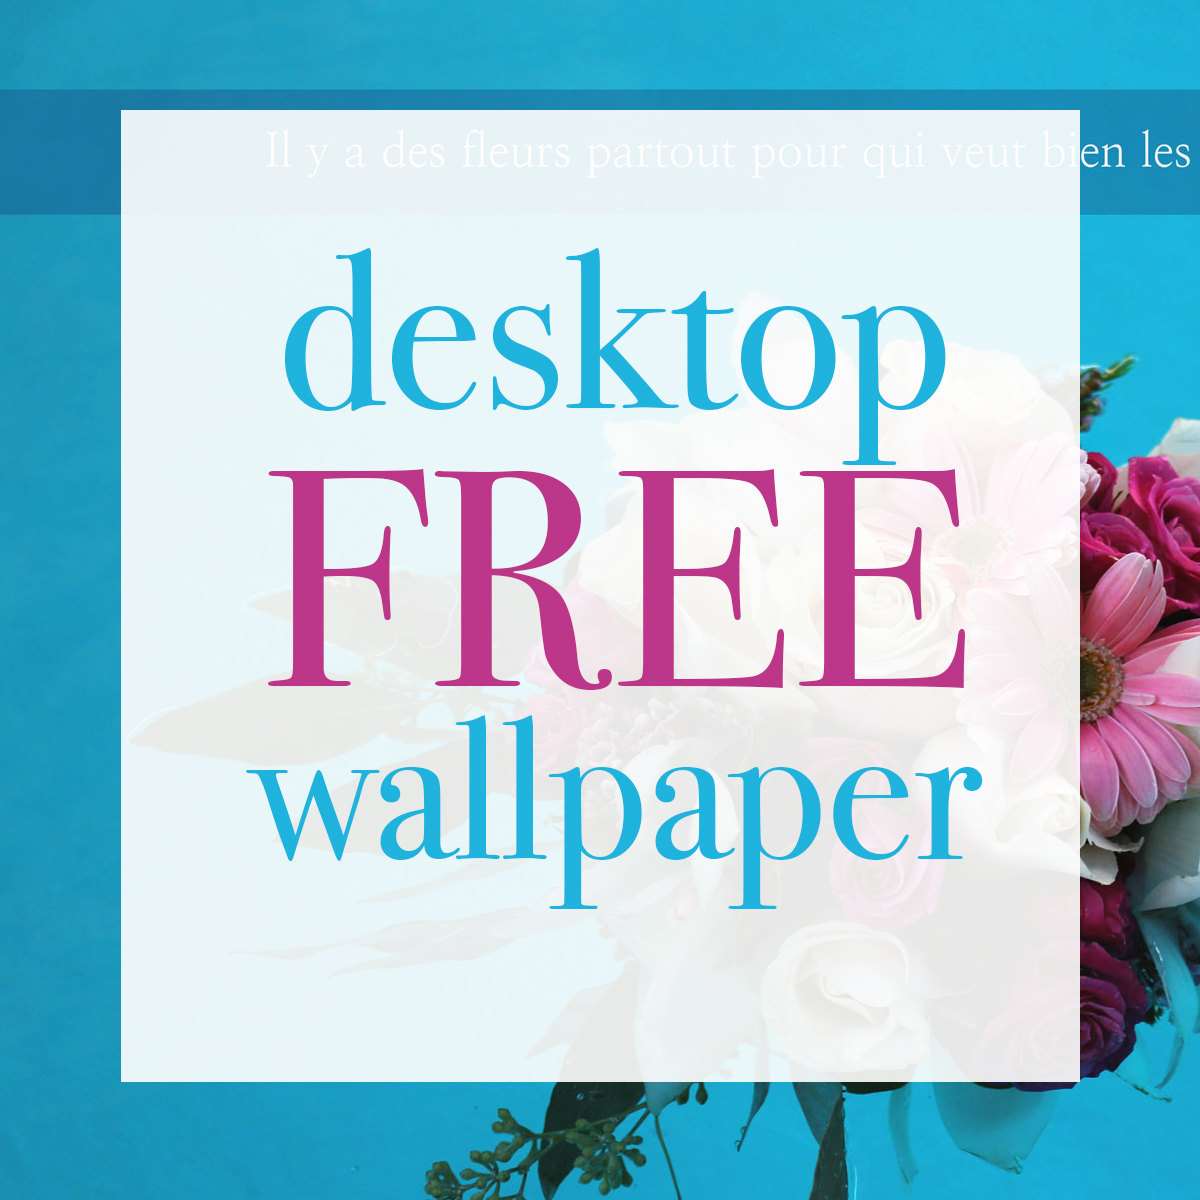 Free downloadable desktop wallpaper with flower theme and quote